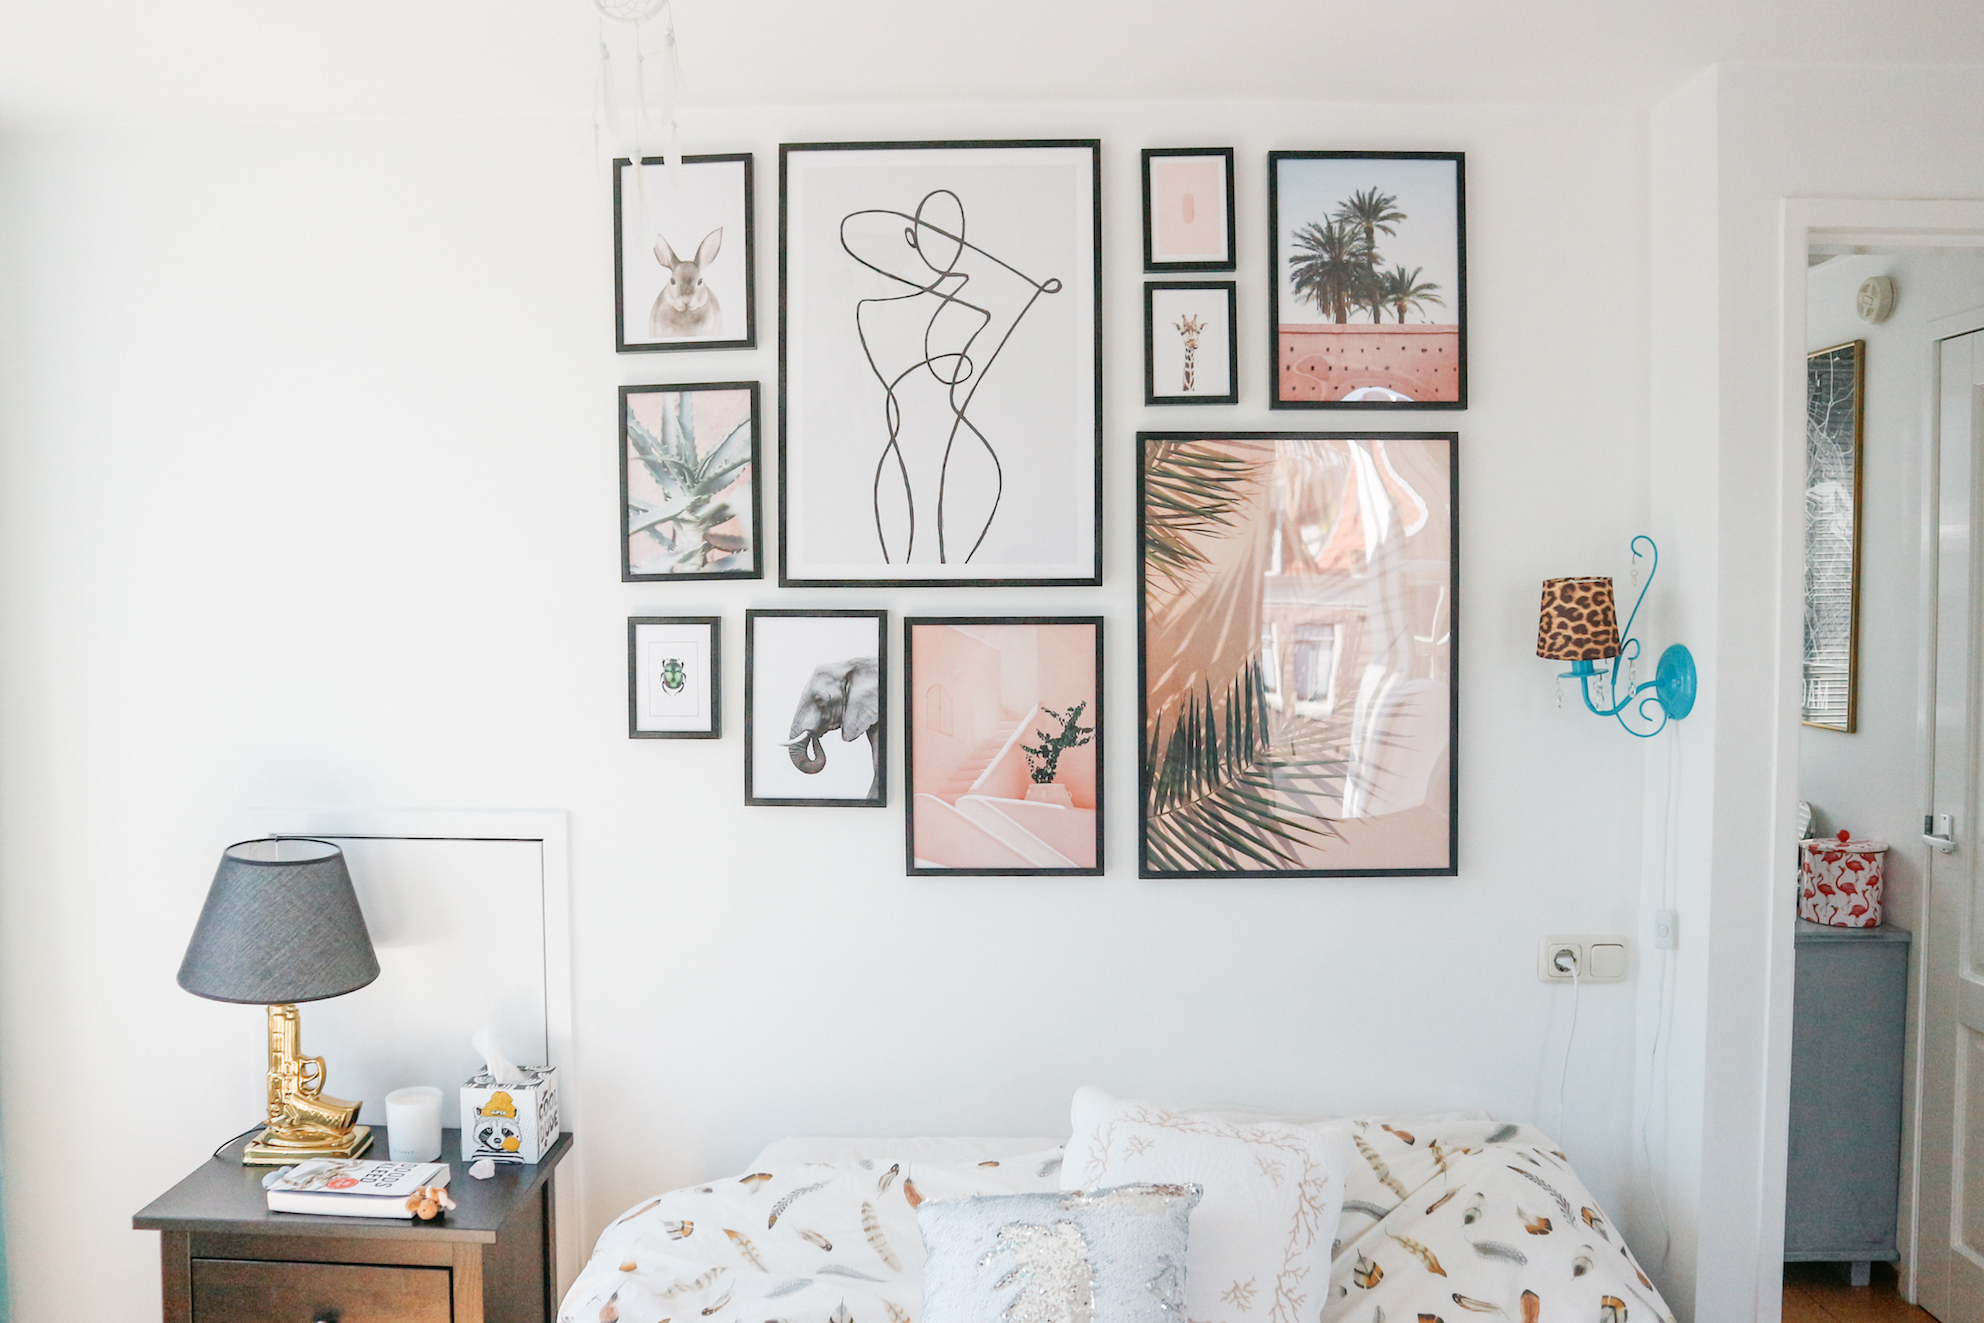 HOW TO MAKE A PERFECT PHOTO WALL